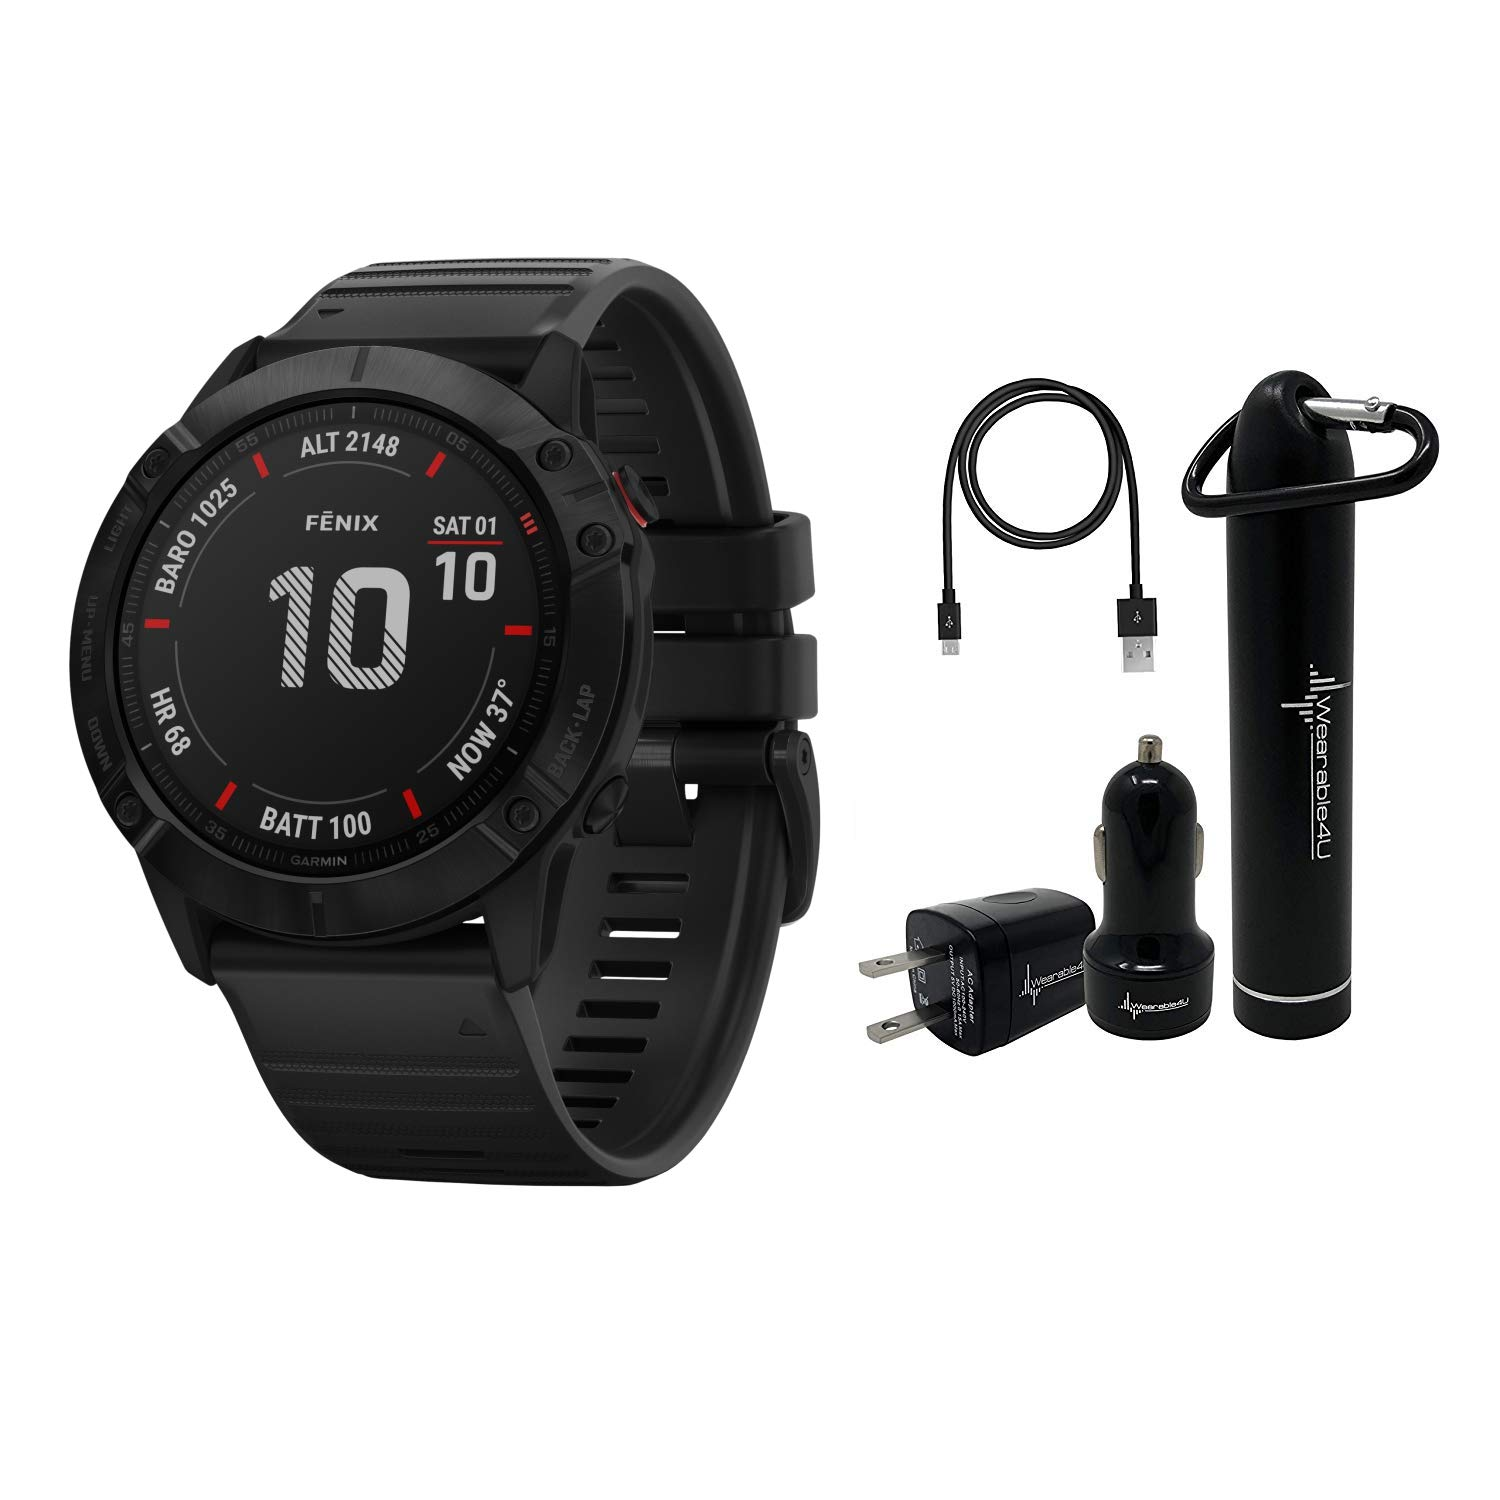 Garmin Fenix 6X Premium Multisport GPS Watches with Pulse OX, Routable Maps and Music with Included Wearable4U Power…